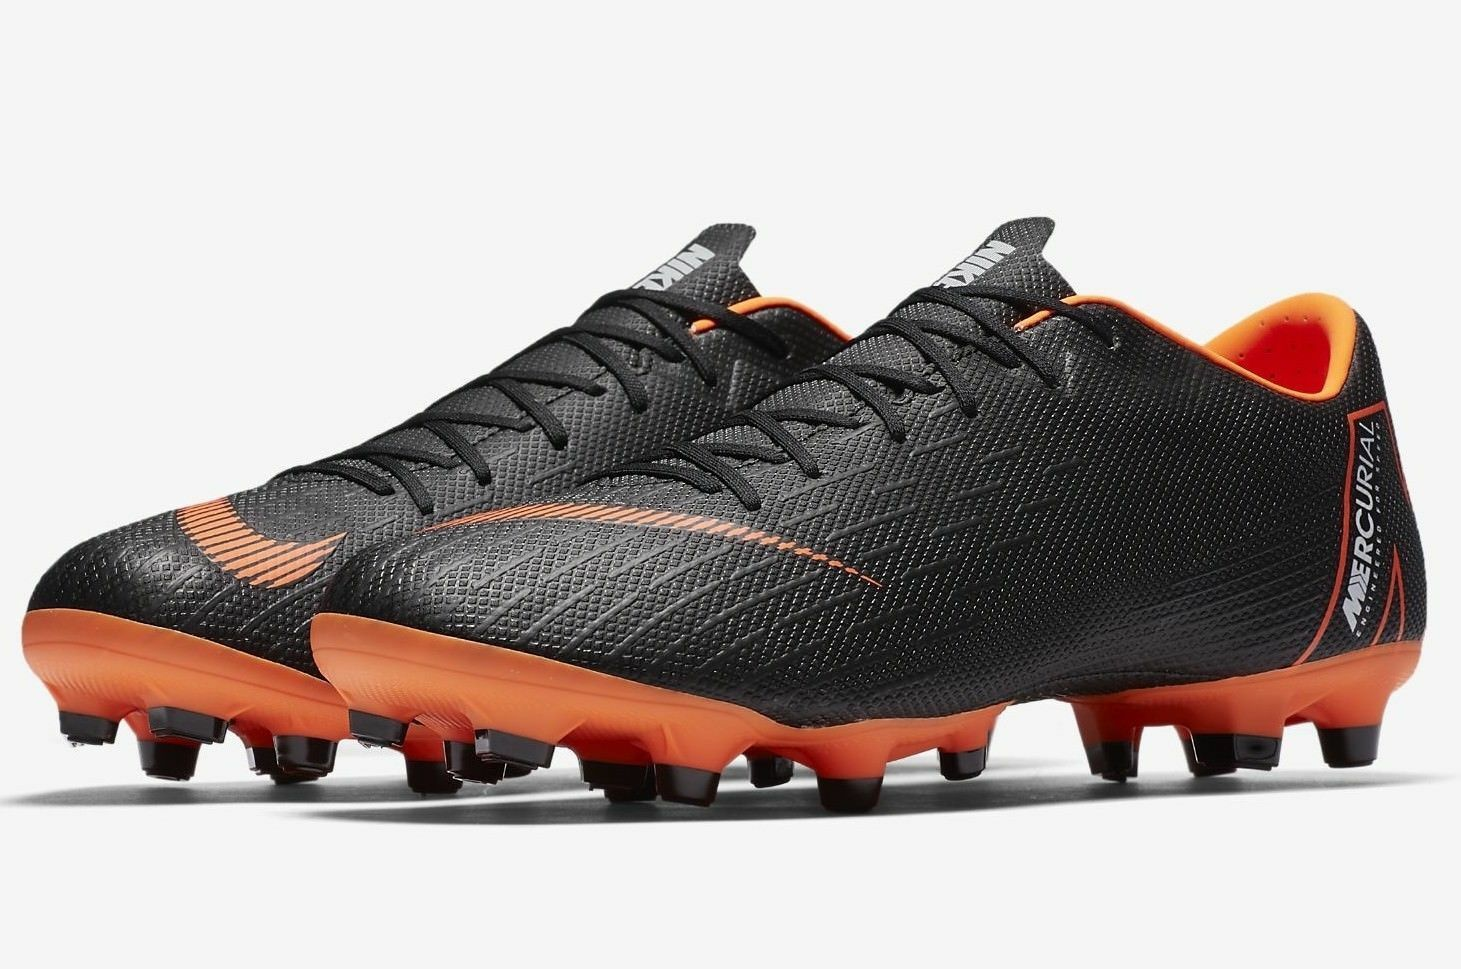 Nike Mercurial Vapor XII Academy MG Men's Soccer Cleats AH7375-081 10.5 12